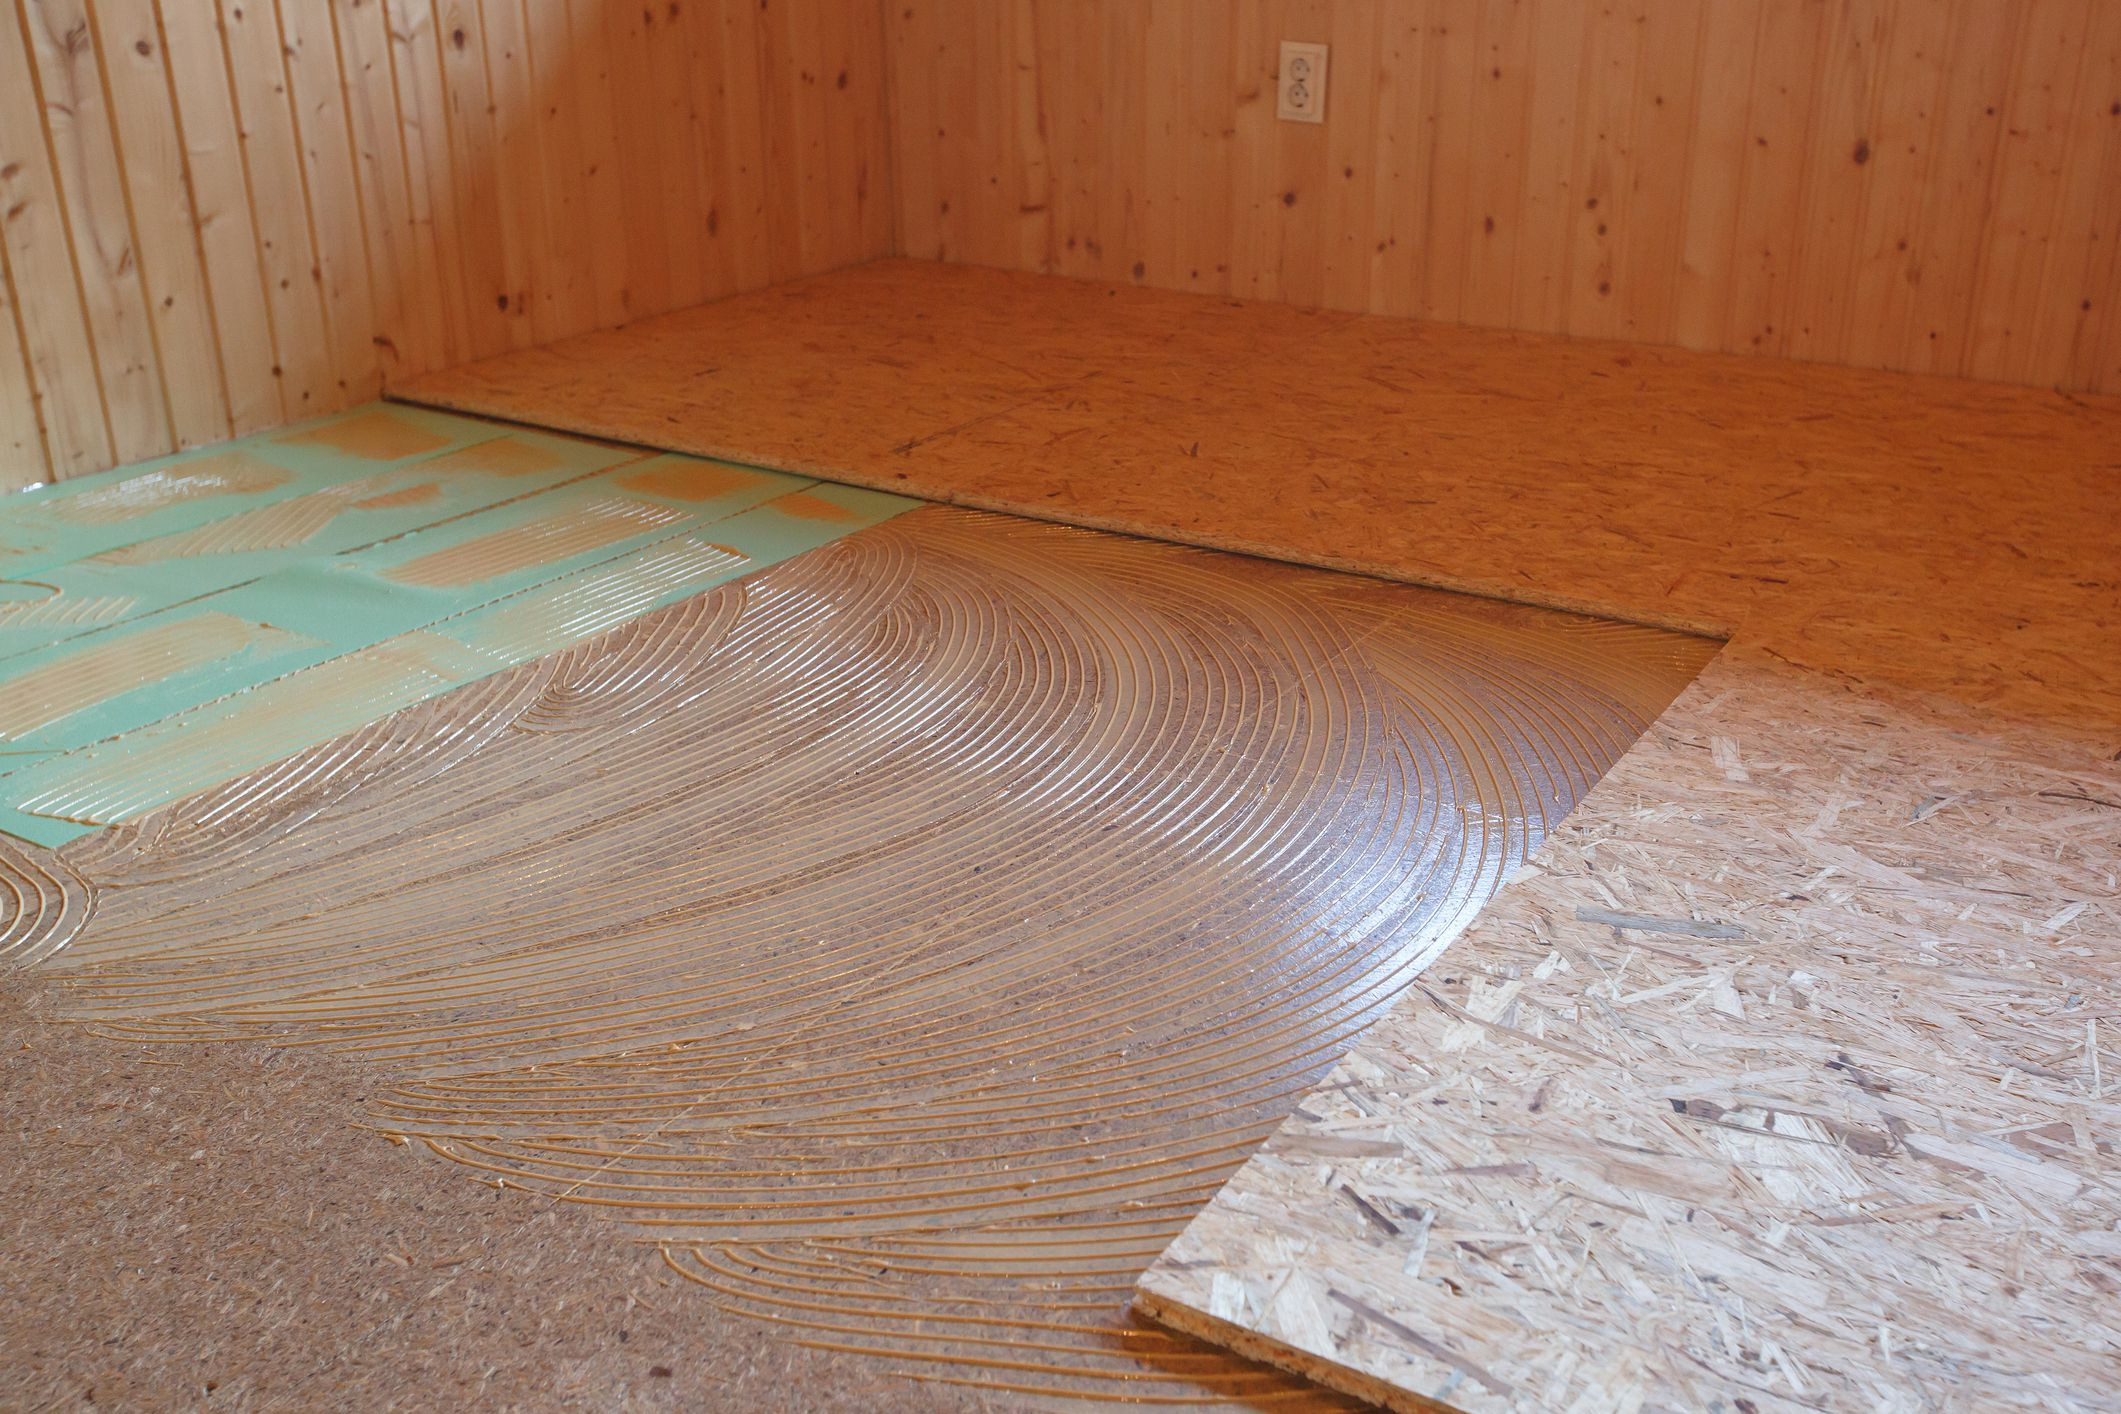 cheap 3 4 hardwood flooring of types of subfloor materials in construction projects with gettyimages 892047030 5af5f46fc064710036eebd22